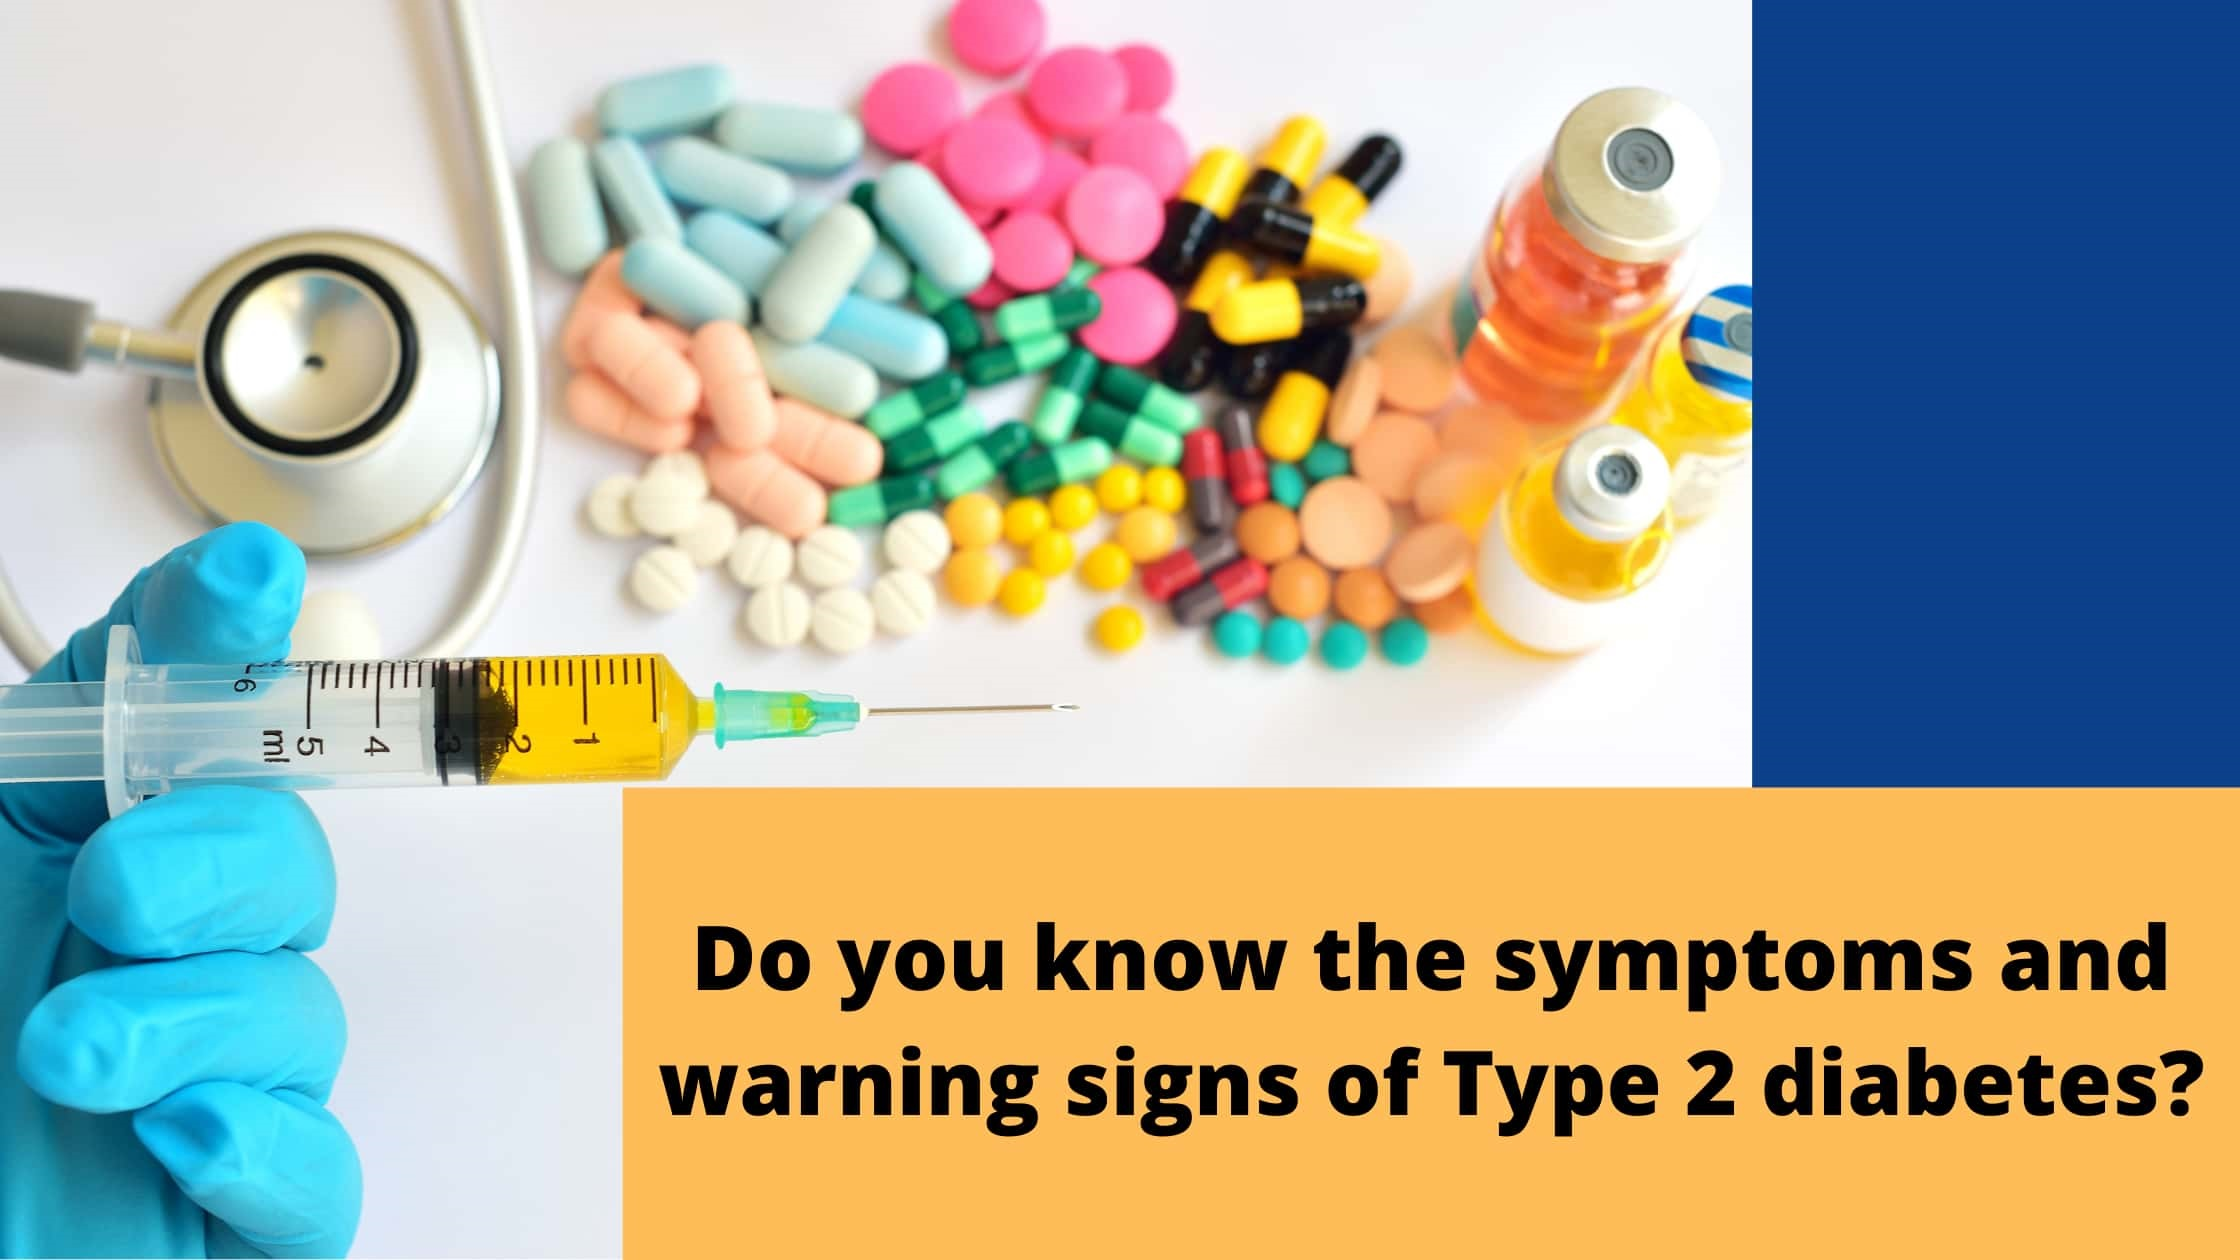 Do You Know the Symptoms and Warning Signs of Type 2 Diabetes?